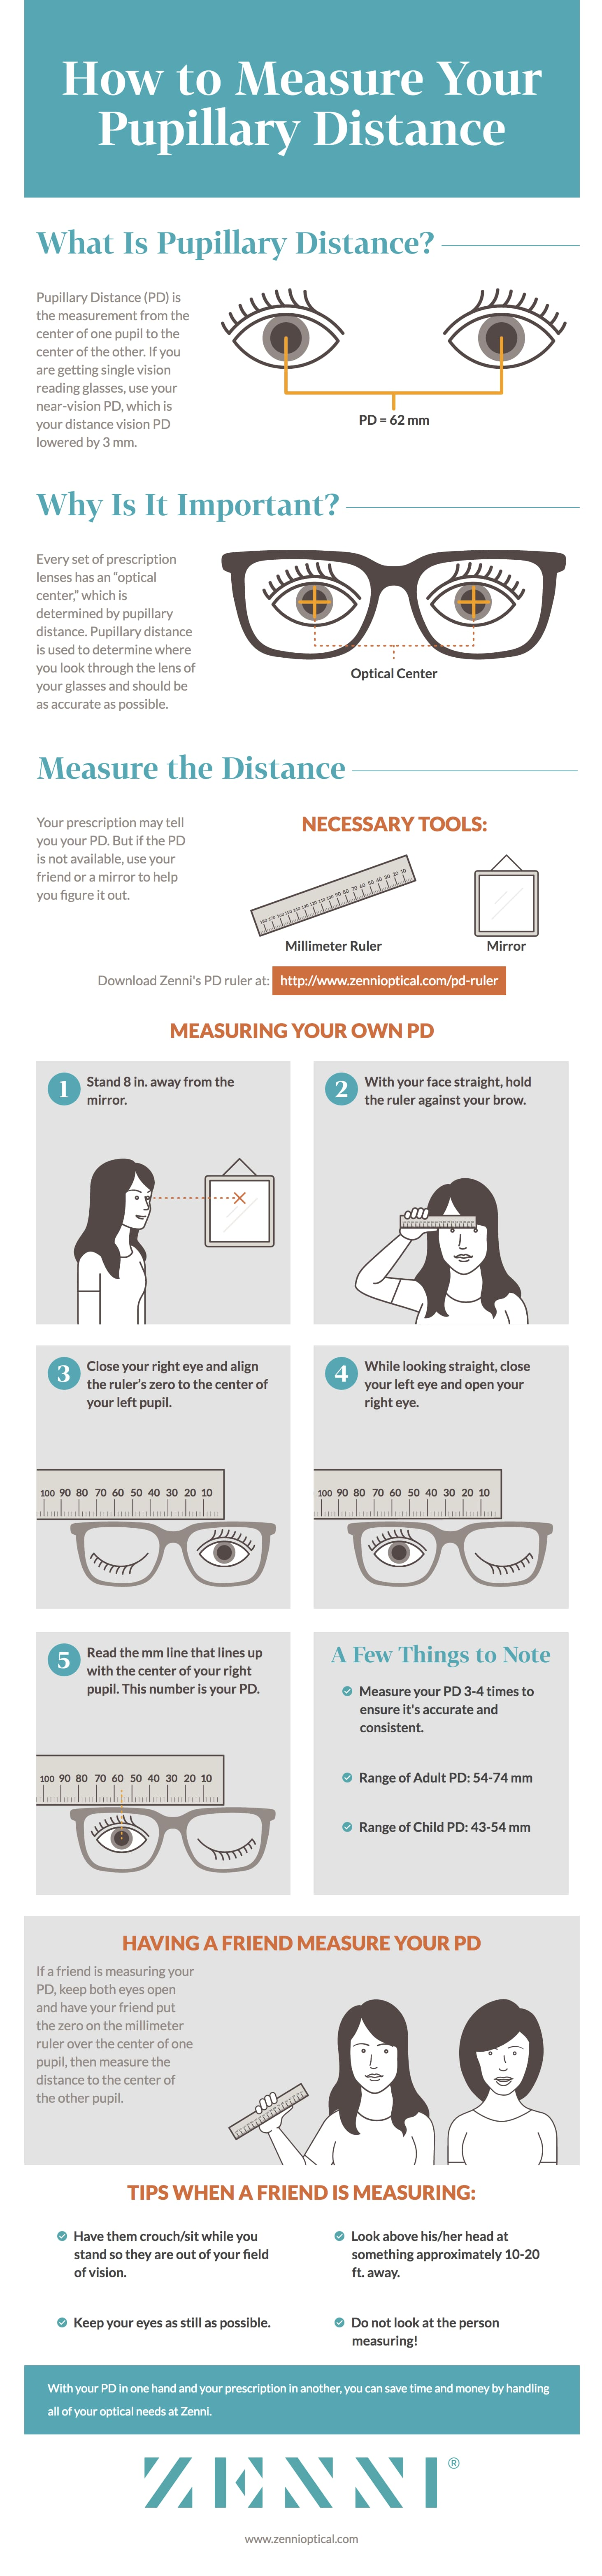 How to Measure Your Pupillary Distance (PD) Infographic | Zenni Optical